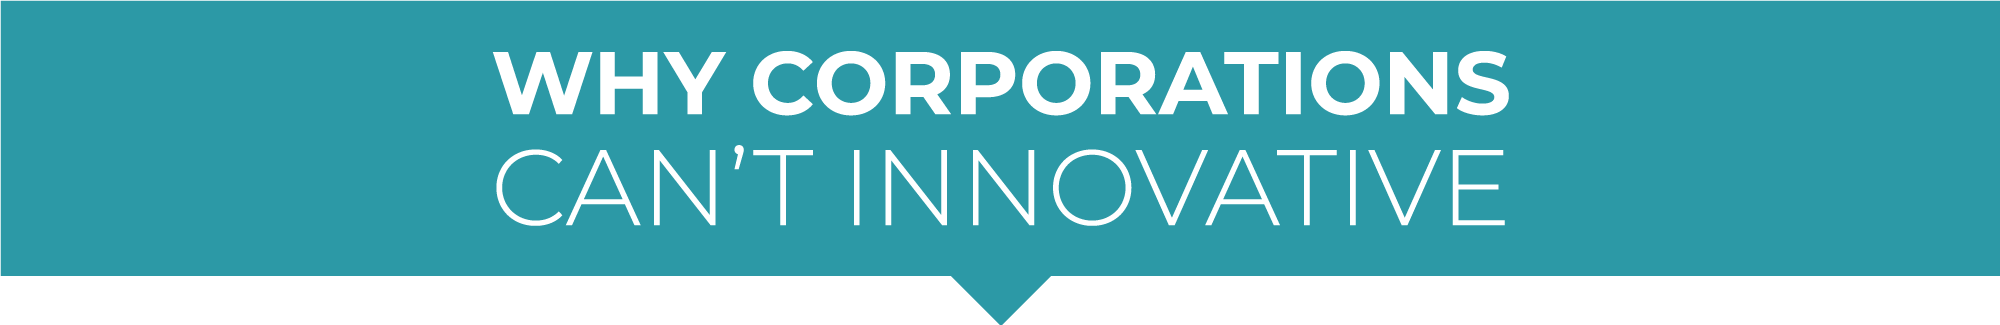 why-corporations-can't-innovate